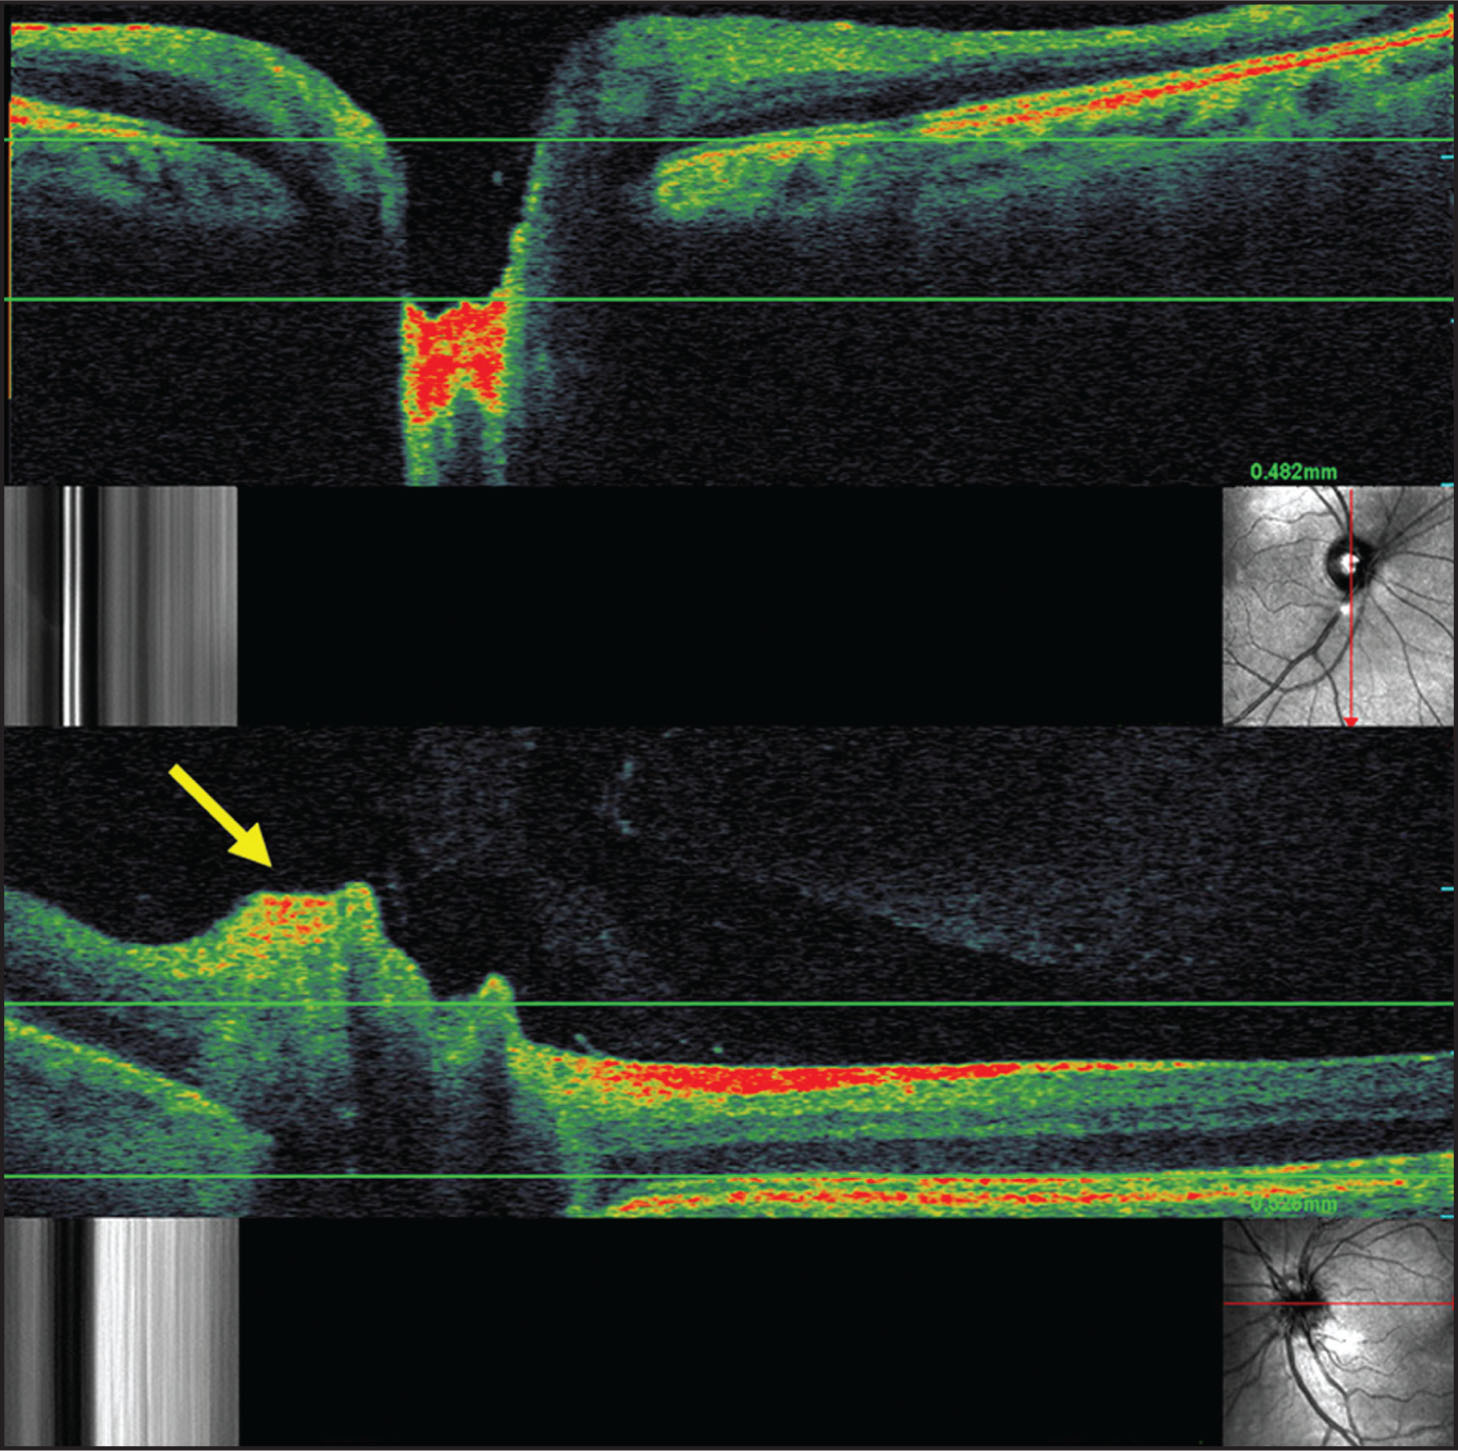 Optical Coherence Tomography/scanning Laser Ophthalmoscopy (OCT/SLO) of Normal Control and Optic Nerve Head Drusen. (Top) Transverse OCT/SLO Scan of Healthy Optic Nerve, Demonstrating Smooth Contour of Nerve Fiber Layer at Disc Margin, Converging to a Discernible Cup that Has a Base Shallower than the Level of the Retinal Pigment Epithelium (measured by Placing the First Horizontal Caliper at the Inner Aspect of the Red Stripe Designating the Retinal Pigment Epithelium, and Placing the Second Caliper at the Level of the Cup Base). In Each OCT/SLO Image, the Lower Right Hand Figure Demonstrates the Real-Time SLO Image. The Red Arrow Through the SLO Image Demonstrates Exact Positioning of the OCT Image. (Bottom) SLO-Guided OCT Image Is Demonstrating an Area of Hyperreflectivity with Overlying Nerve Fiber Layer Displacement (yellow Arrow) and Underlying Lucency. The Discernible Cup Is Significantly Elevated from the Reference Level of the Retinal Pigment Epithelium, Measuring 0.526 mm.